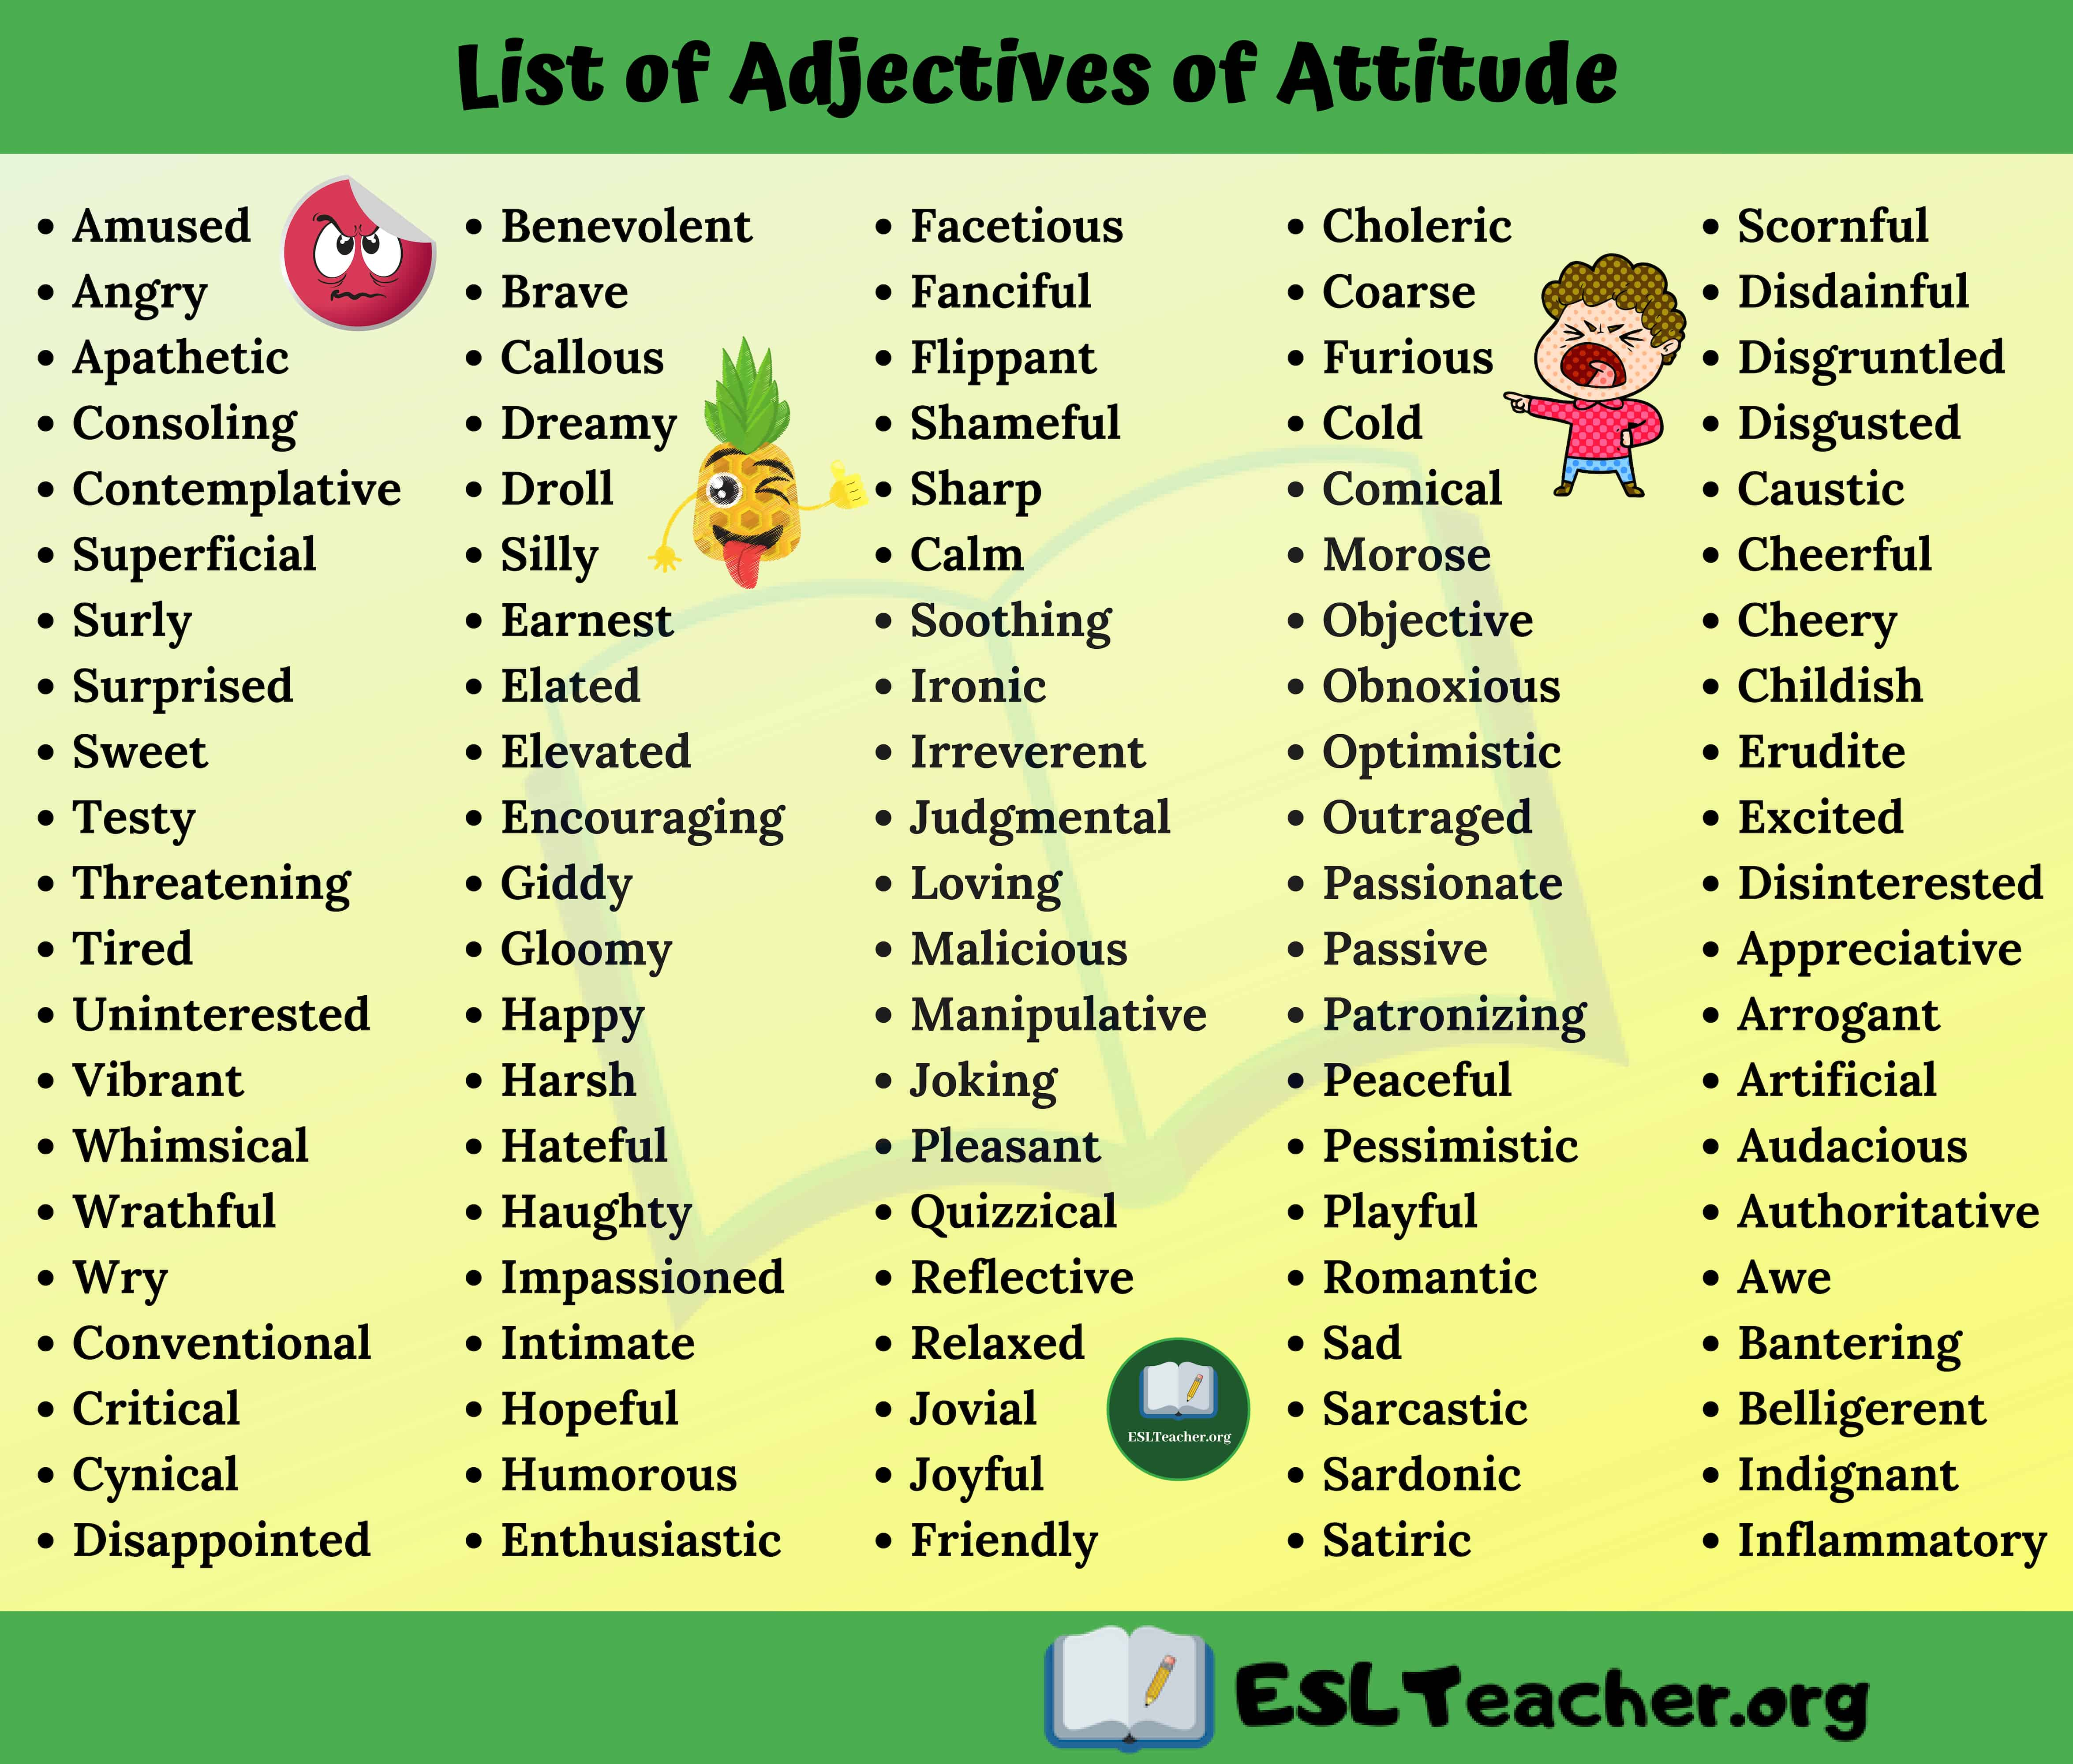 List of Adjectives of Attitude